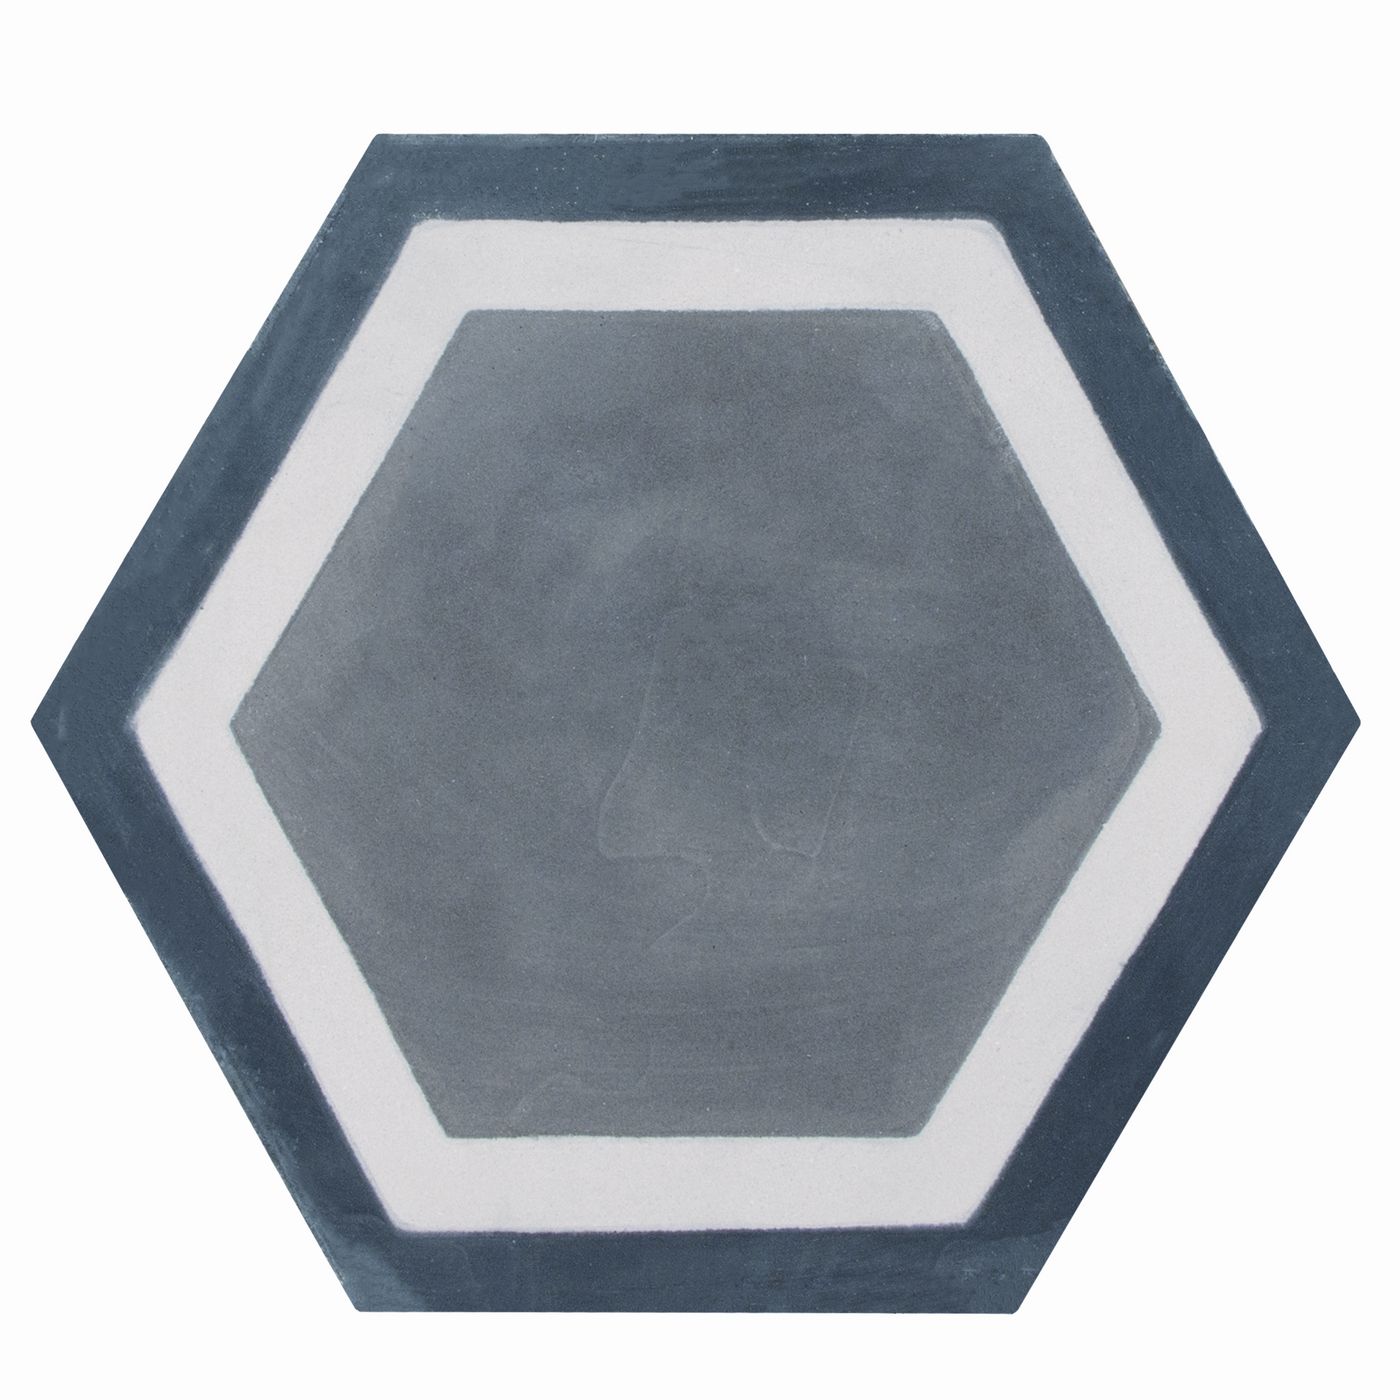 Hexagon cement tile pattern blue/white/grey